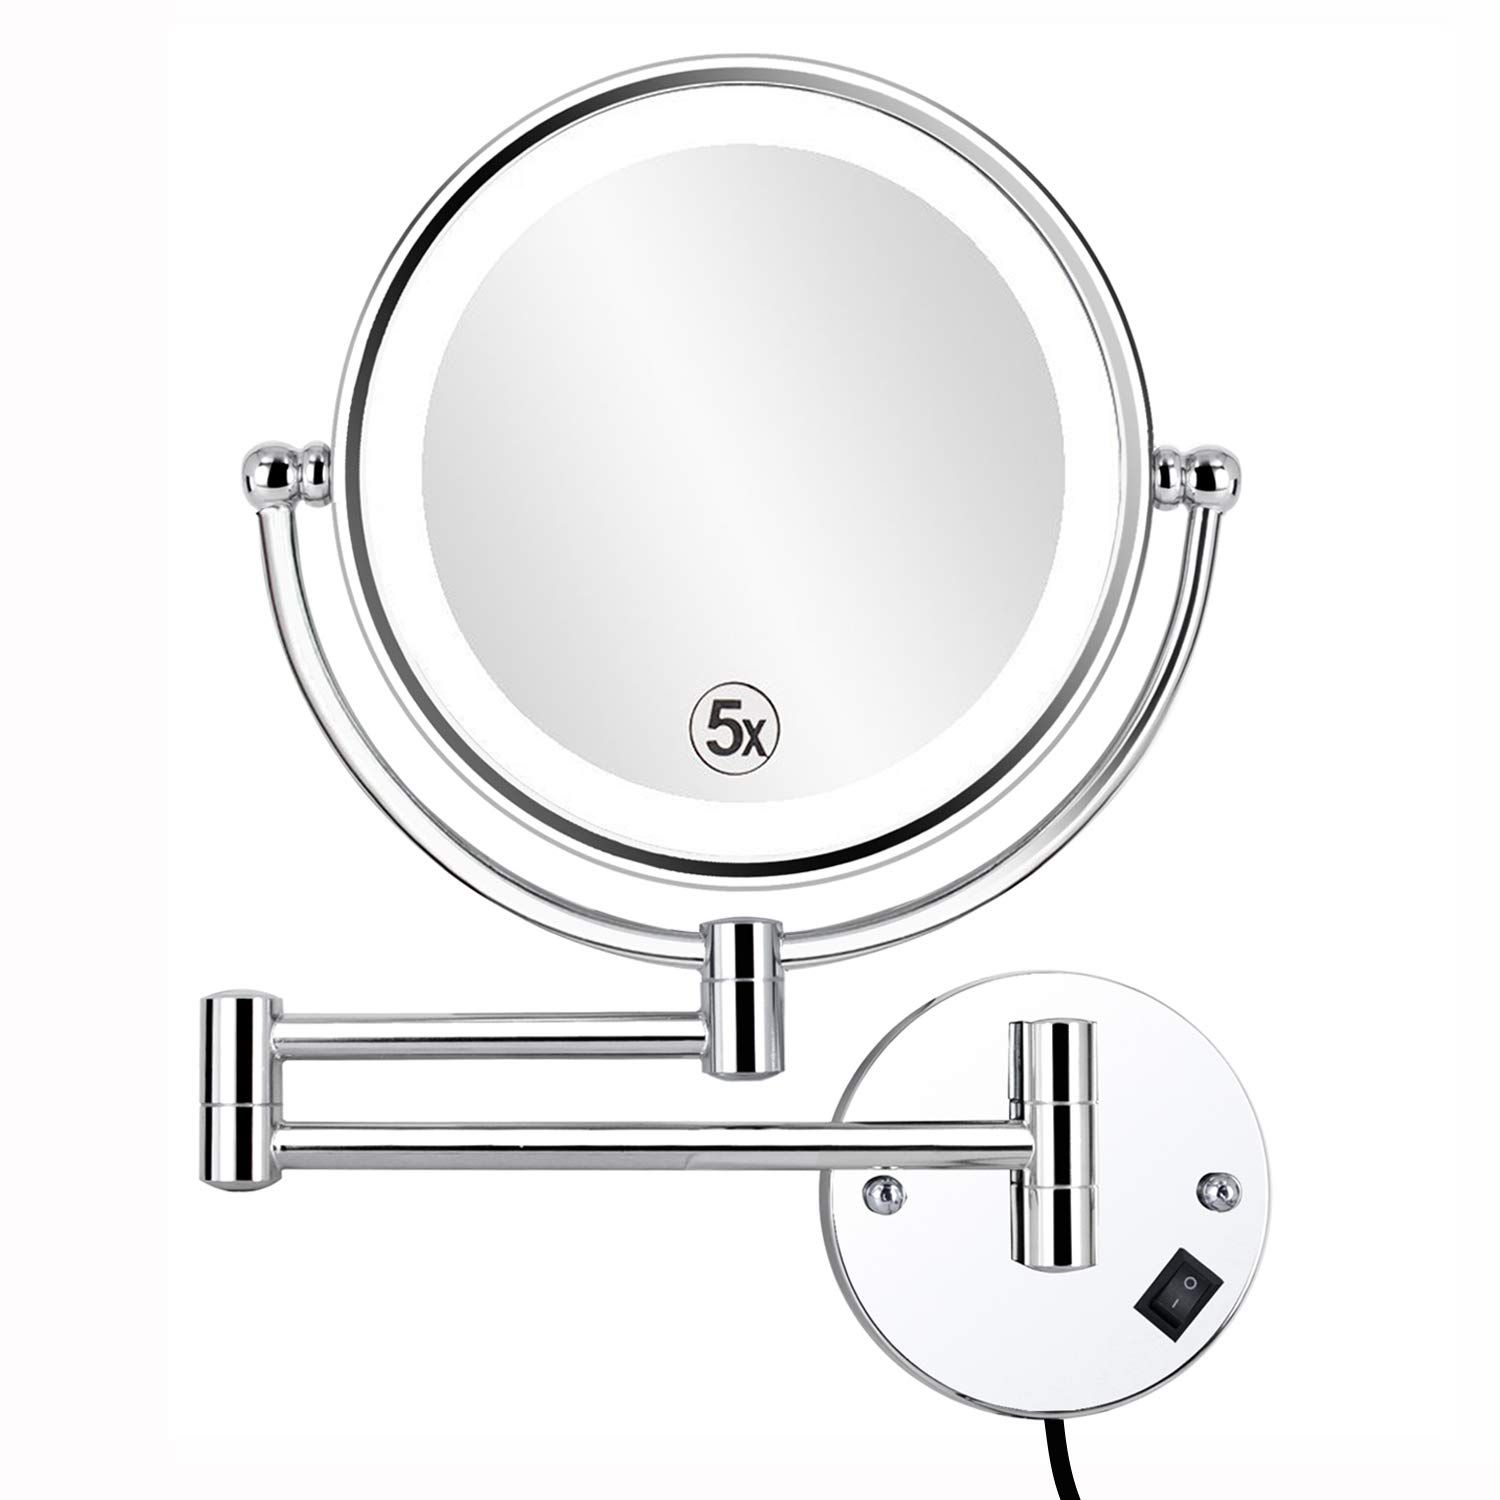 Alhakin 8 5 Inch Led Lighted Wall Mounted Makeup Mirror With 5x Magnification Double Sided Swivel Vanity Mirror F Wall Mounted Makeup Mirror Led Mirror Mirror